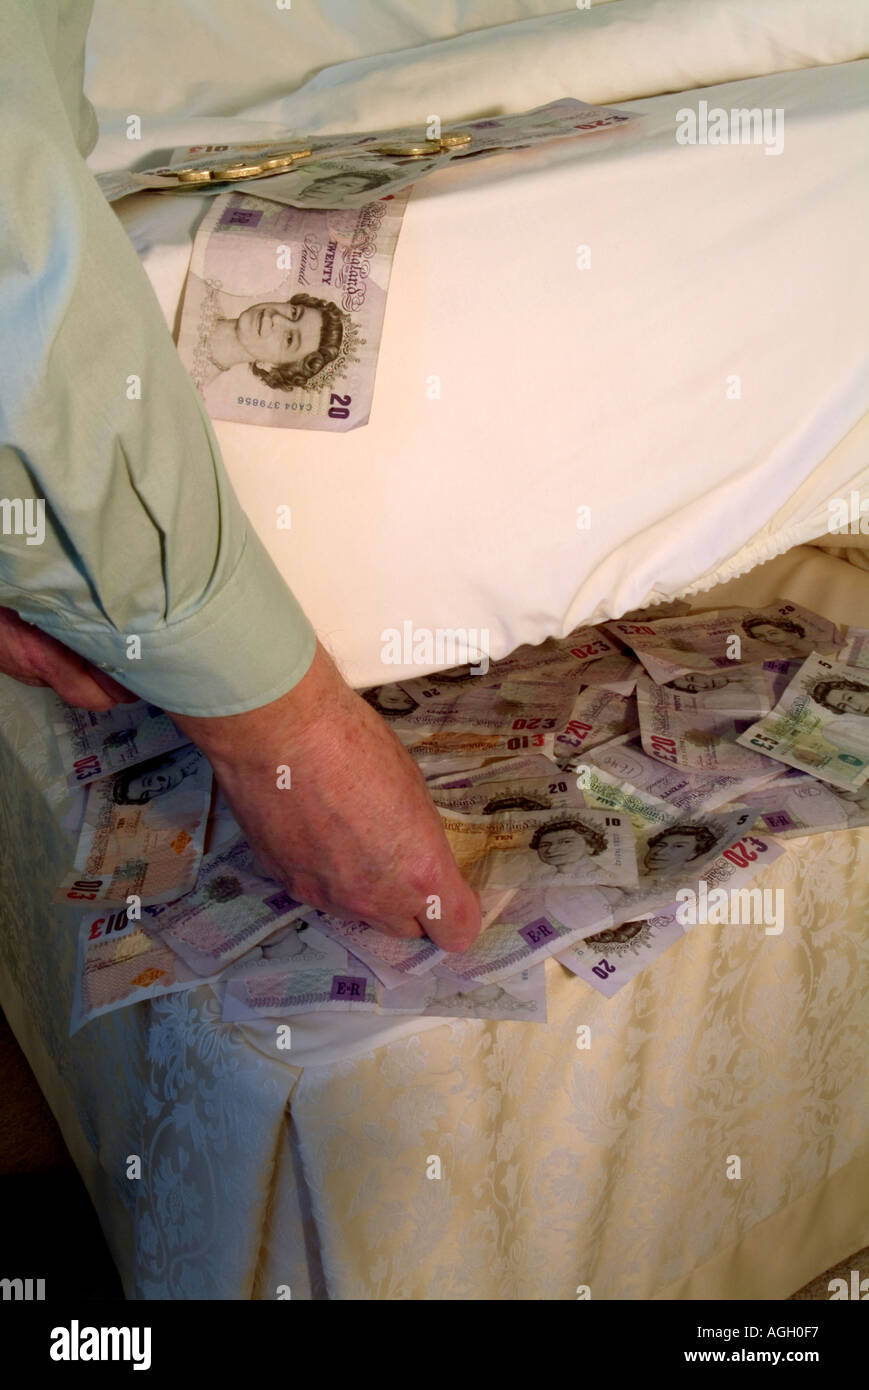 Cash In Hand Pound Sterling Bank Notes Being Placed Under Bed Stock Photo Alamy